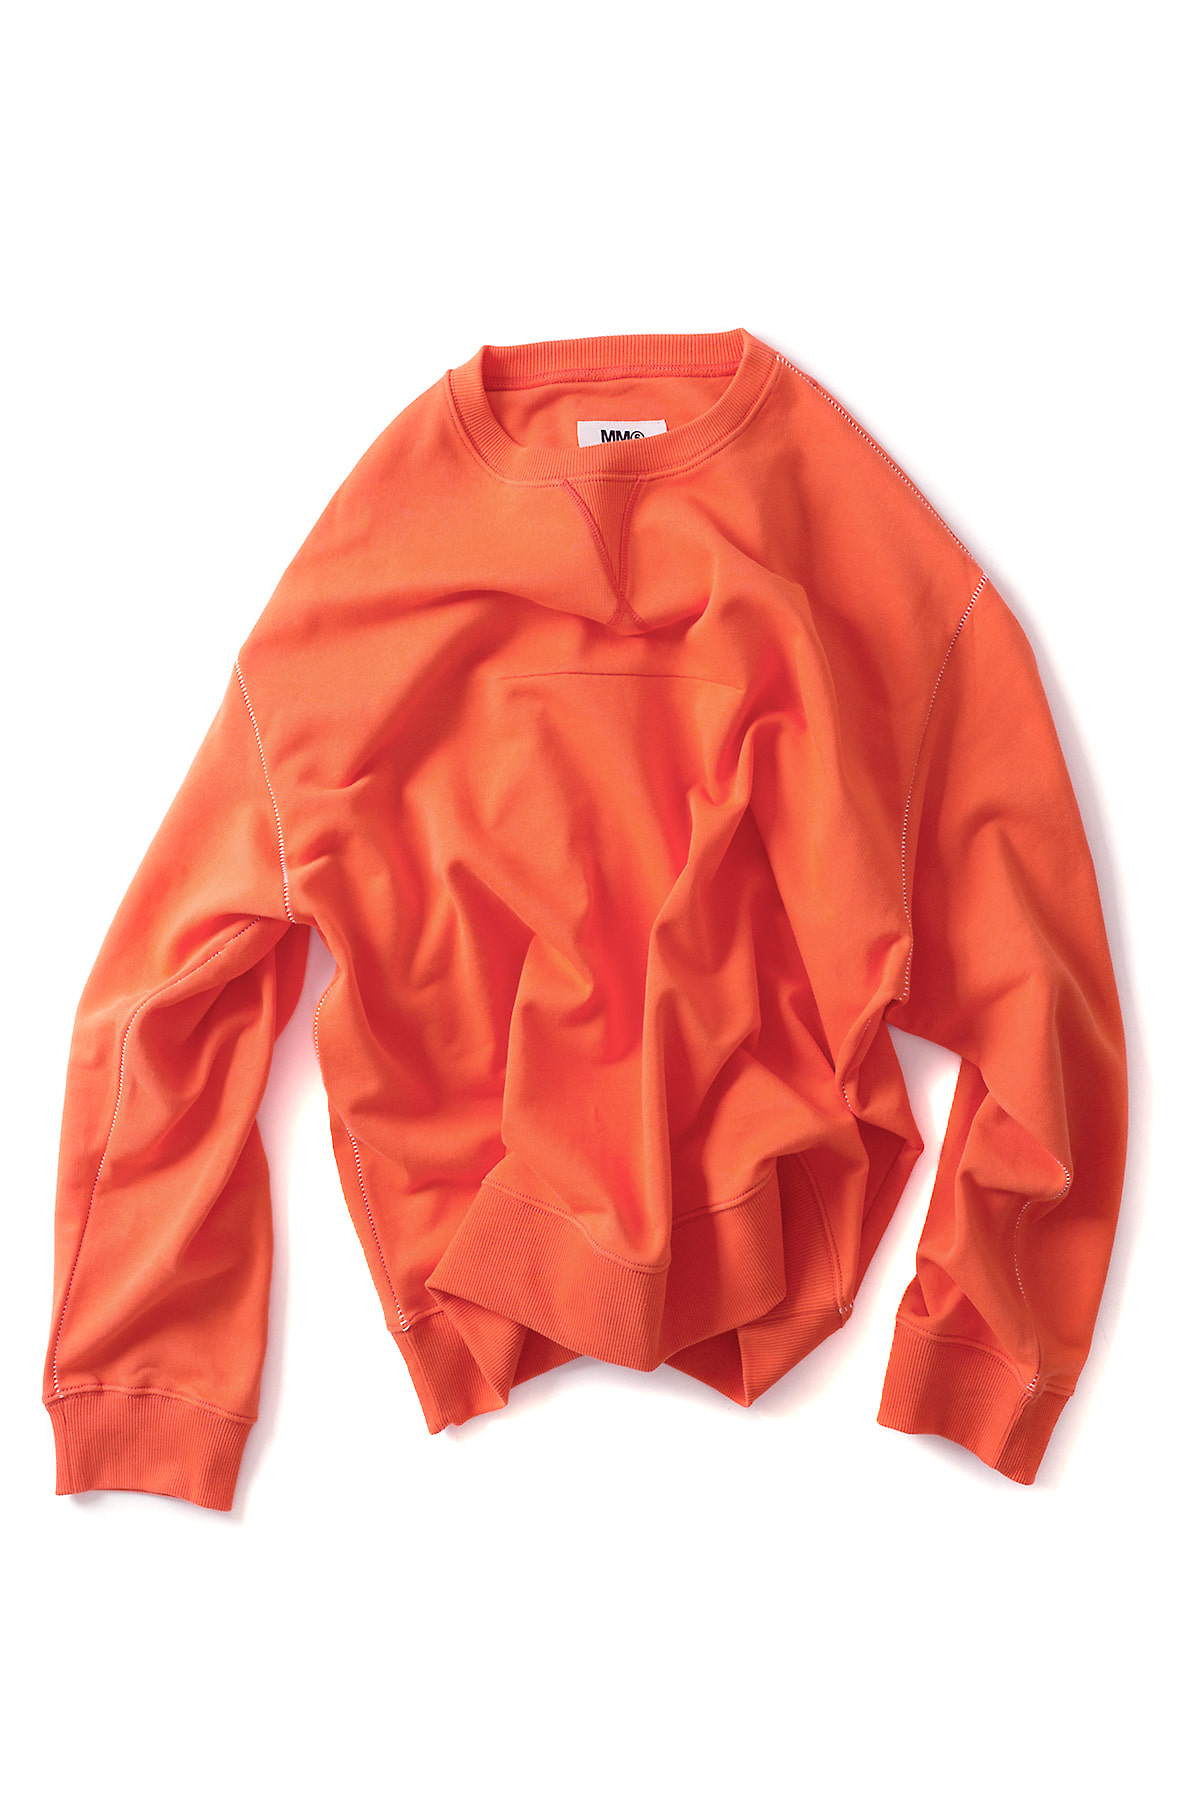 MM6 Maison Margiela : Basic Sweatshirt (Orange)